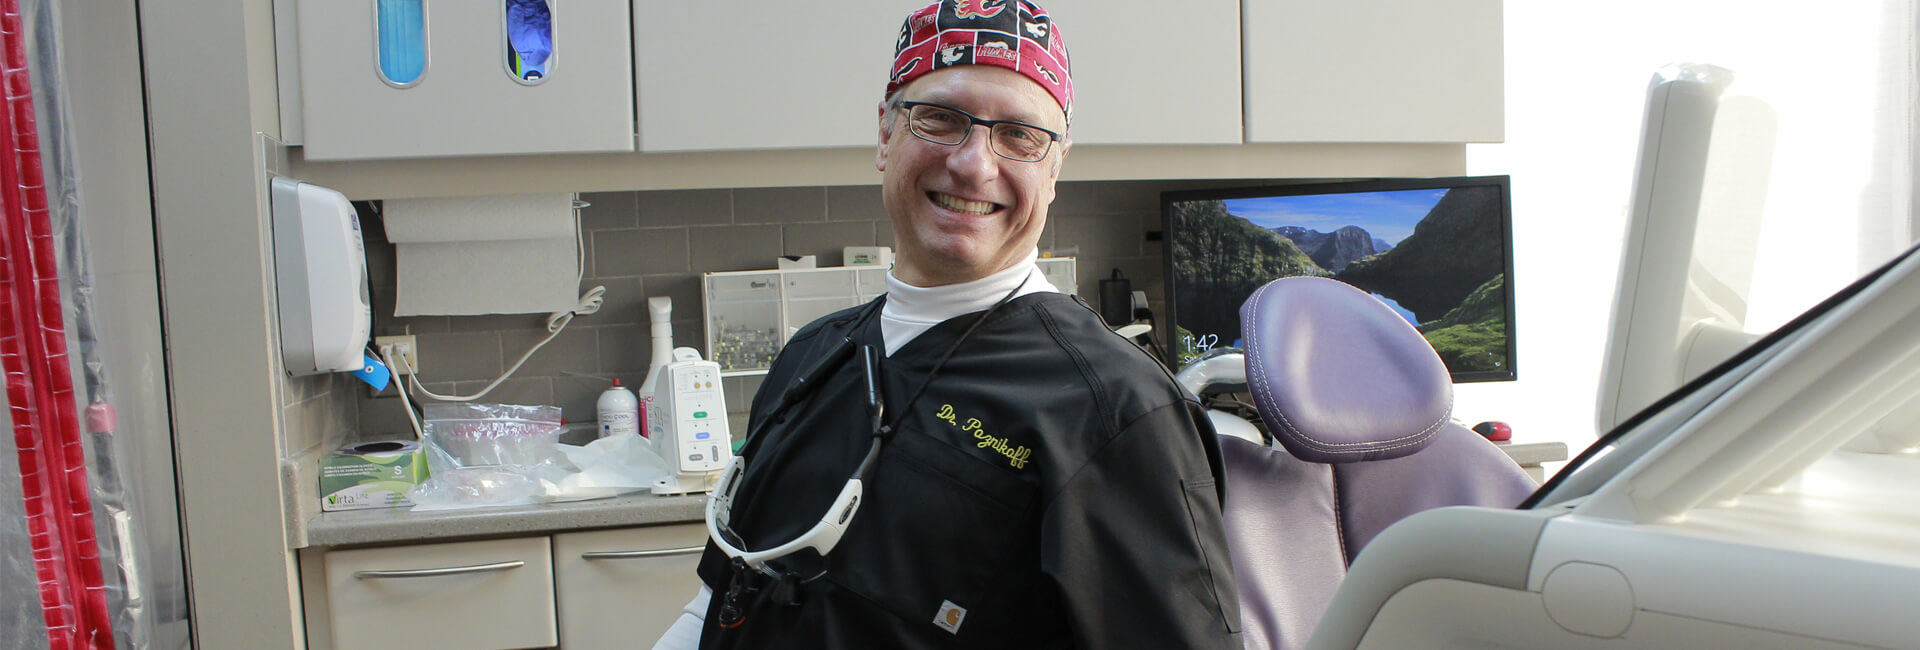 Dr. Kenneth Poznikoff smiling at the camera